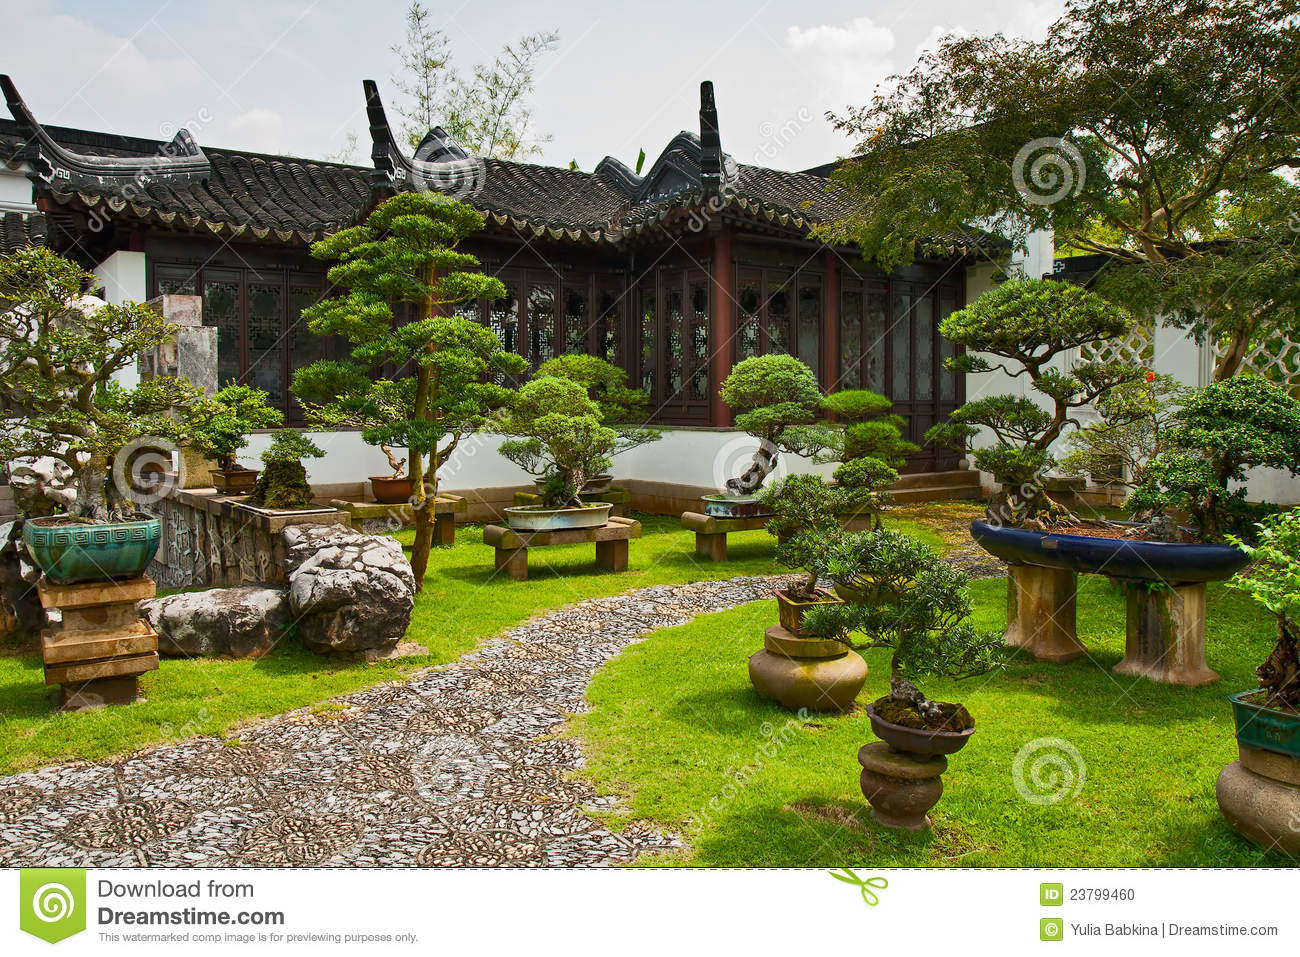 arbeiten ein bonsai singapur im garten stockfoto bild. Black Bedroom Furniture Sets. Home Design Ideas